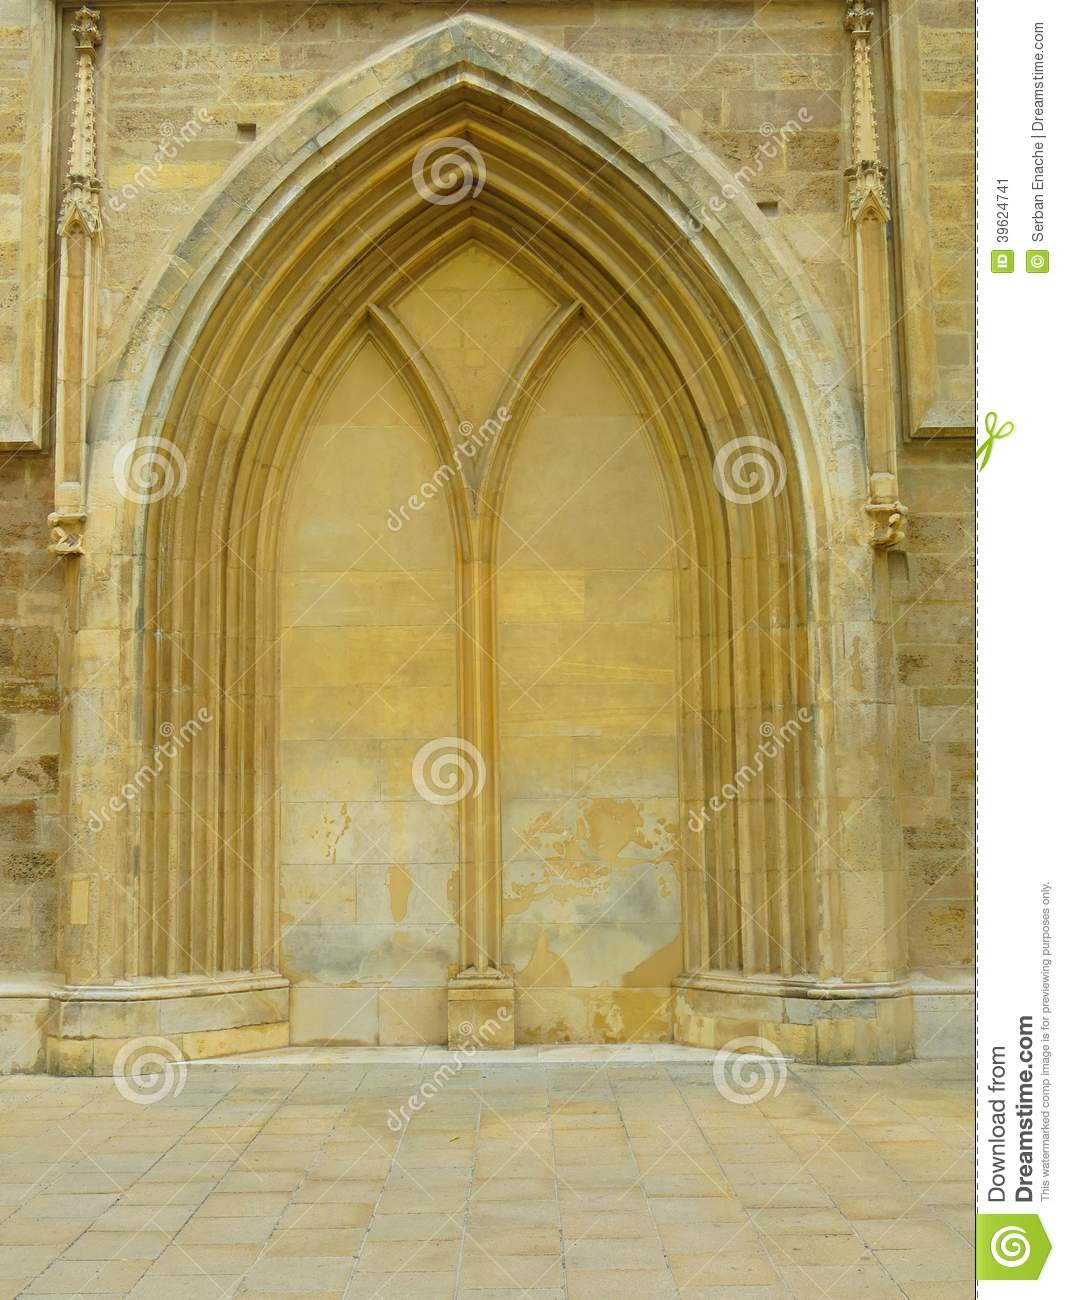 Stone gothic arch stock image. Image of sculpted, archway - 39624741